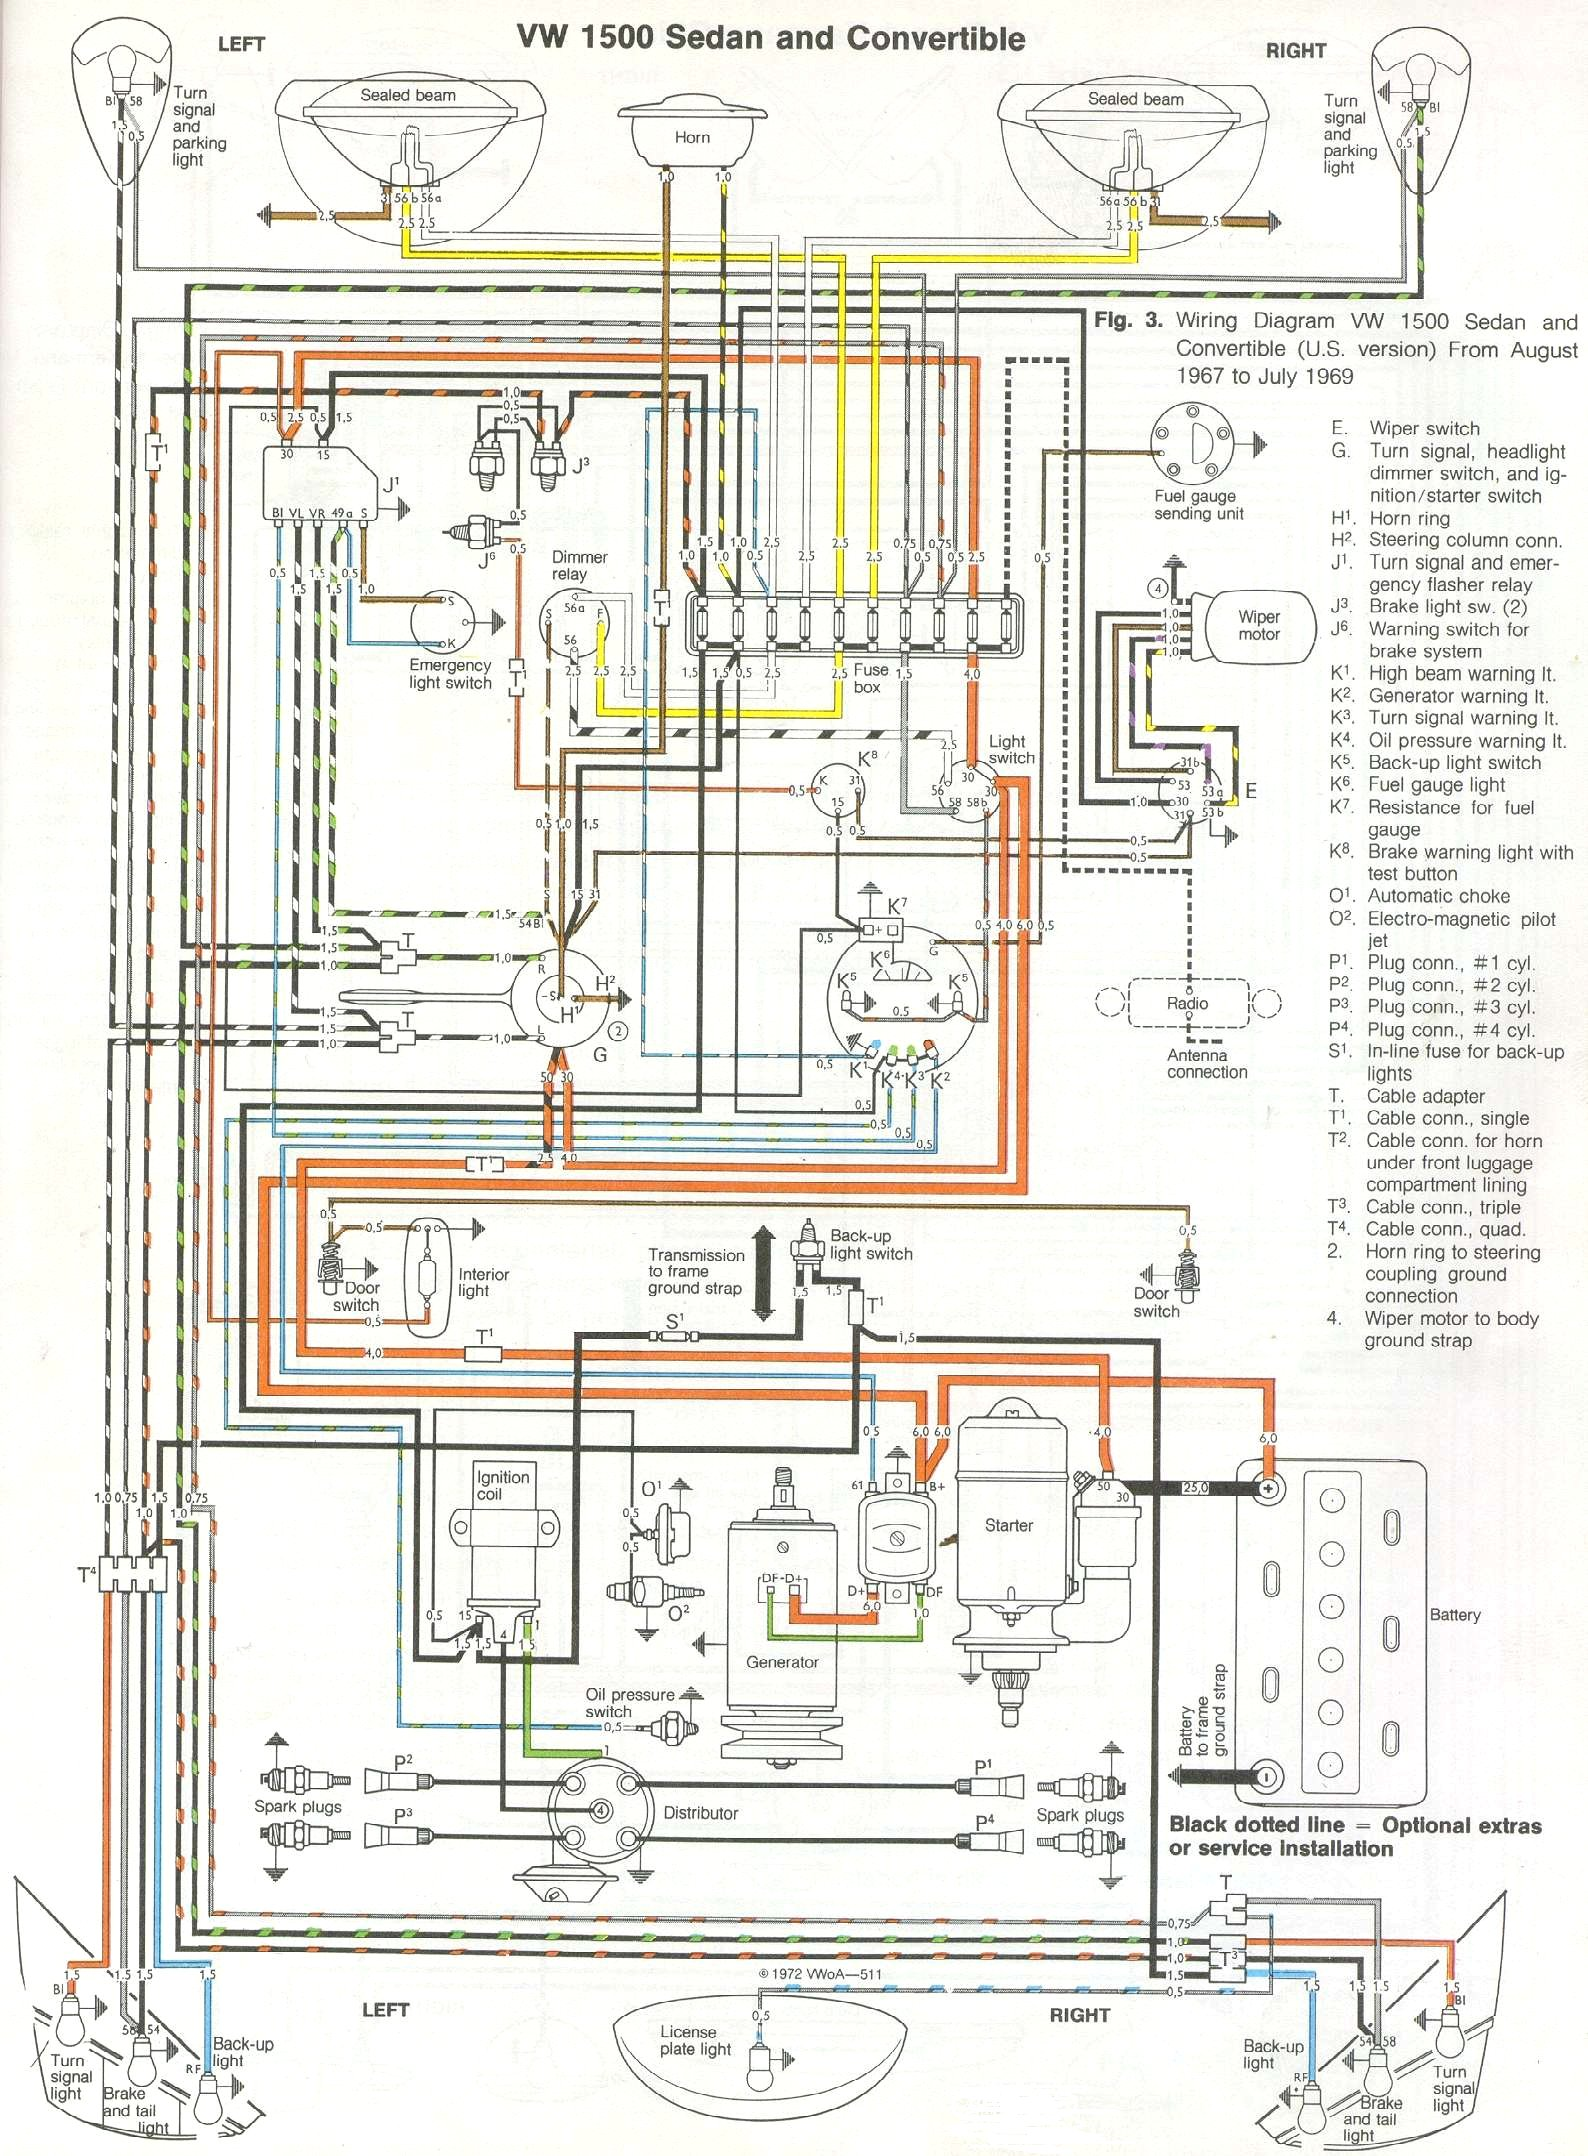 bug_6869 vw wiring harness diagram cj7 wiring harness diagram \u2022 wiring DIY Lingerie Harness at virtualis.co